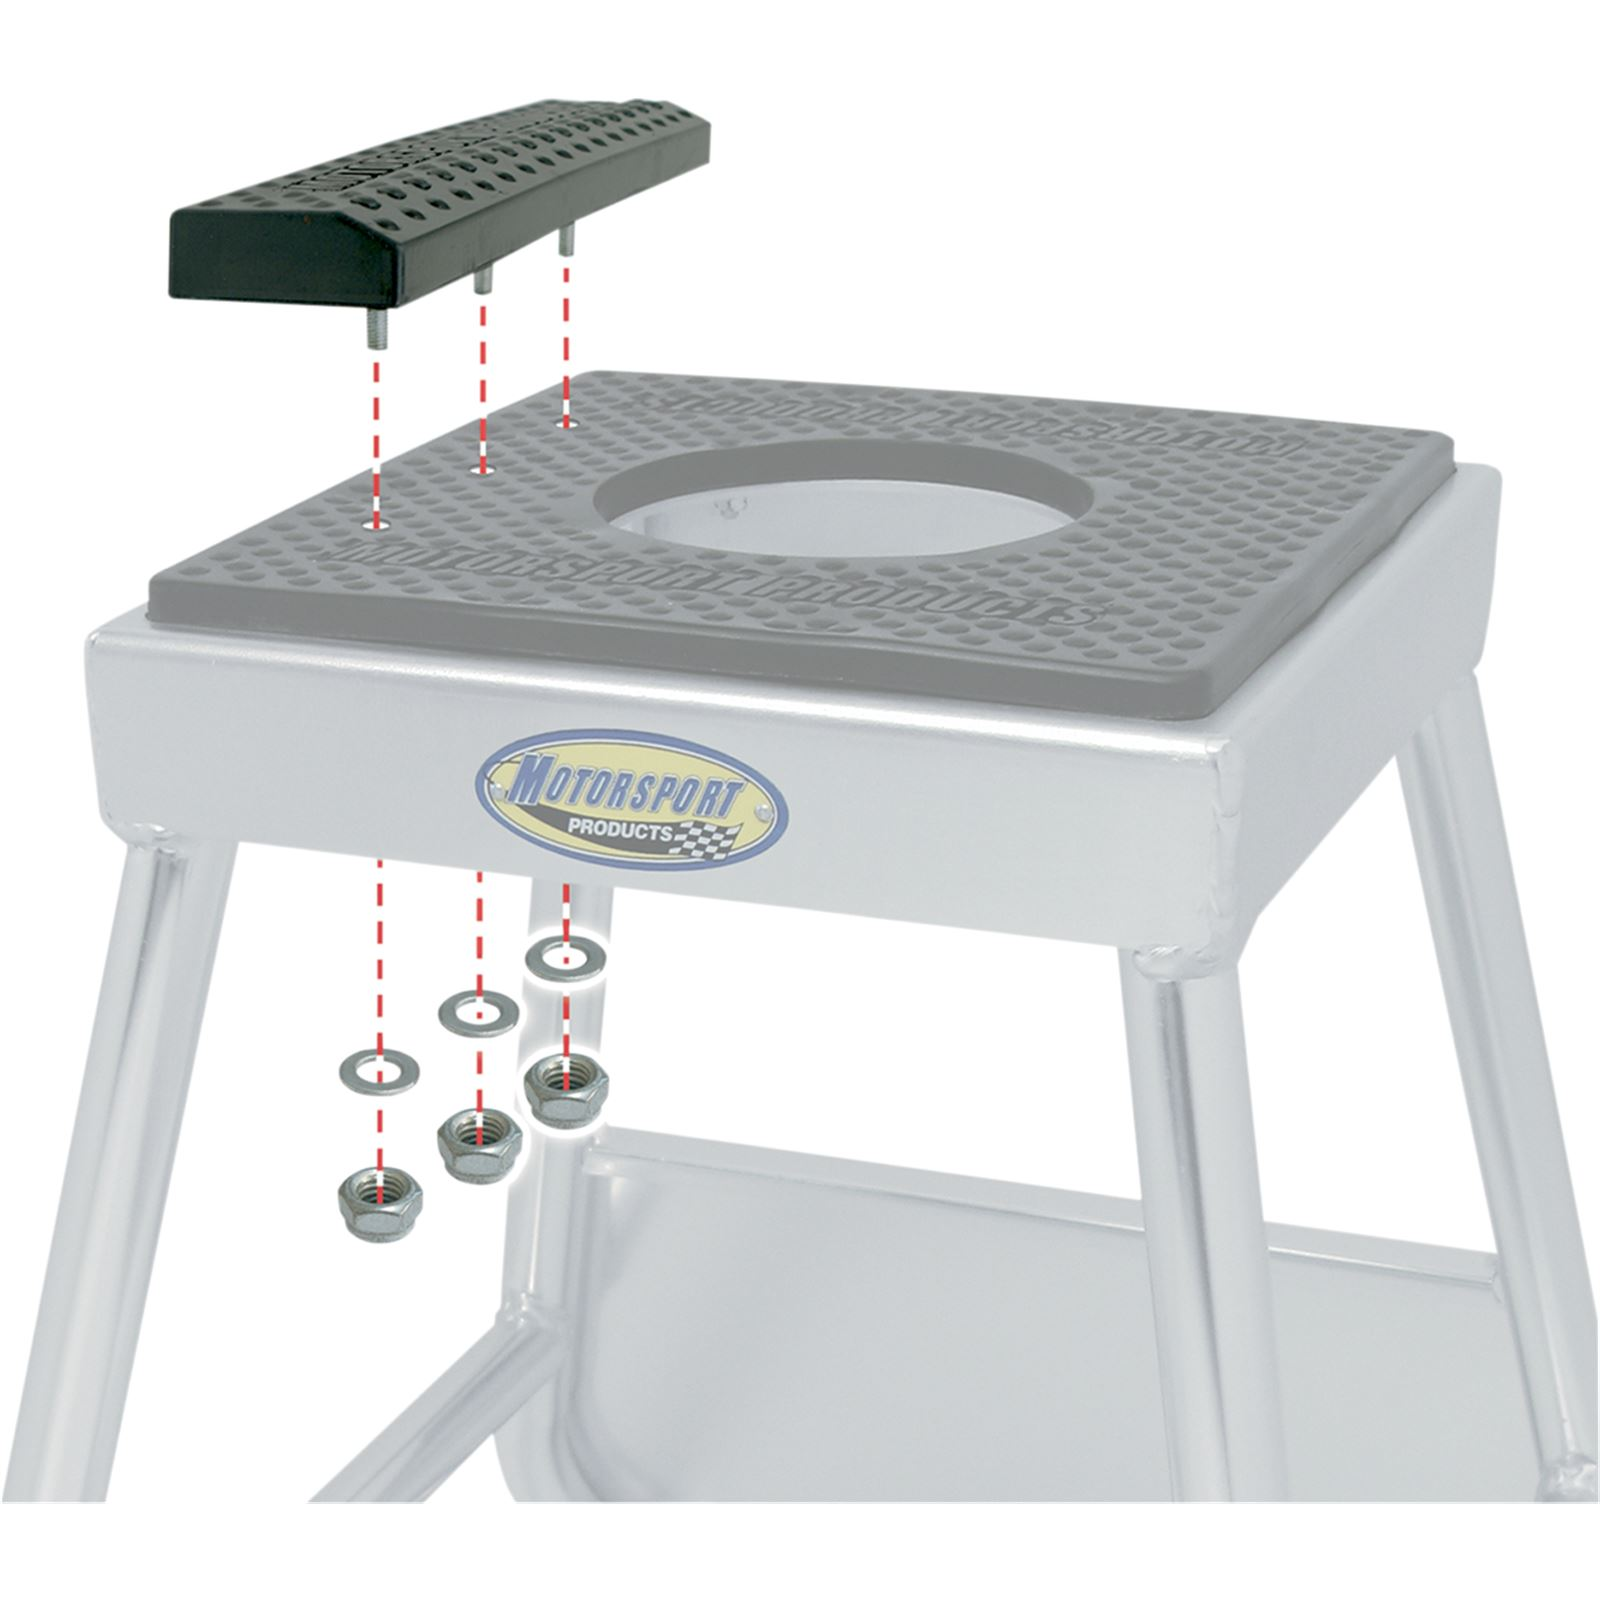 Motorsport Products Wedge Stand